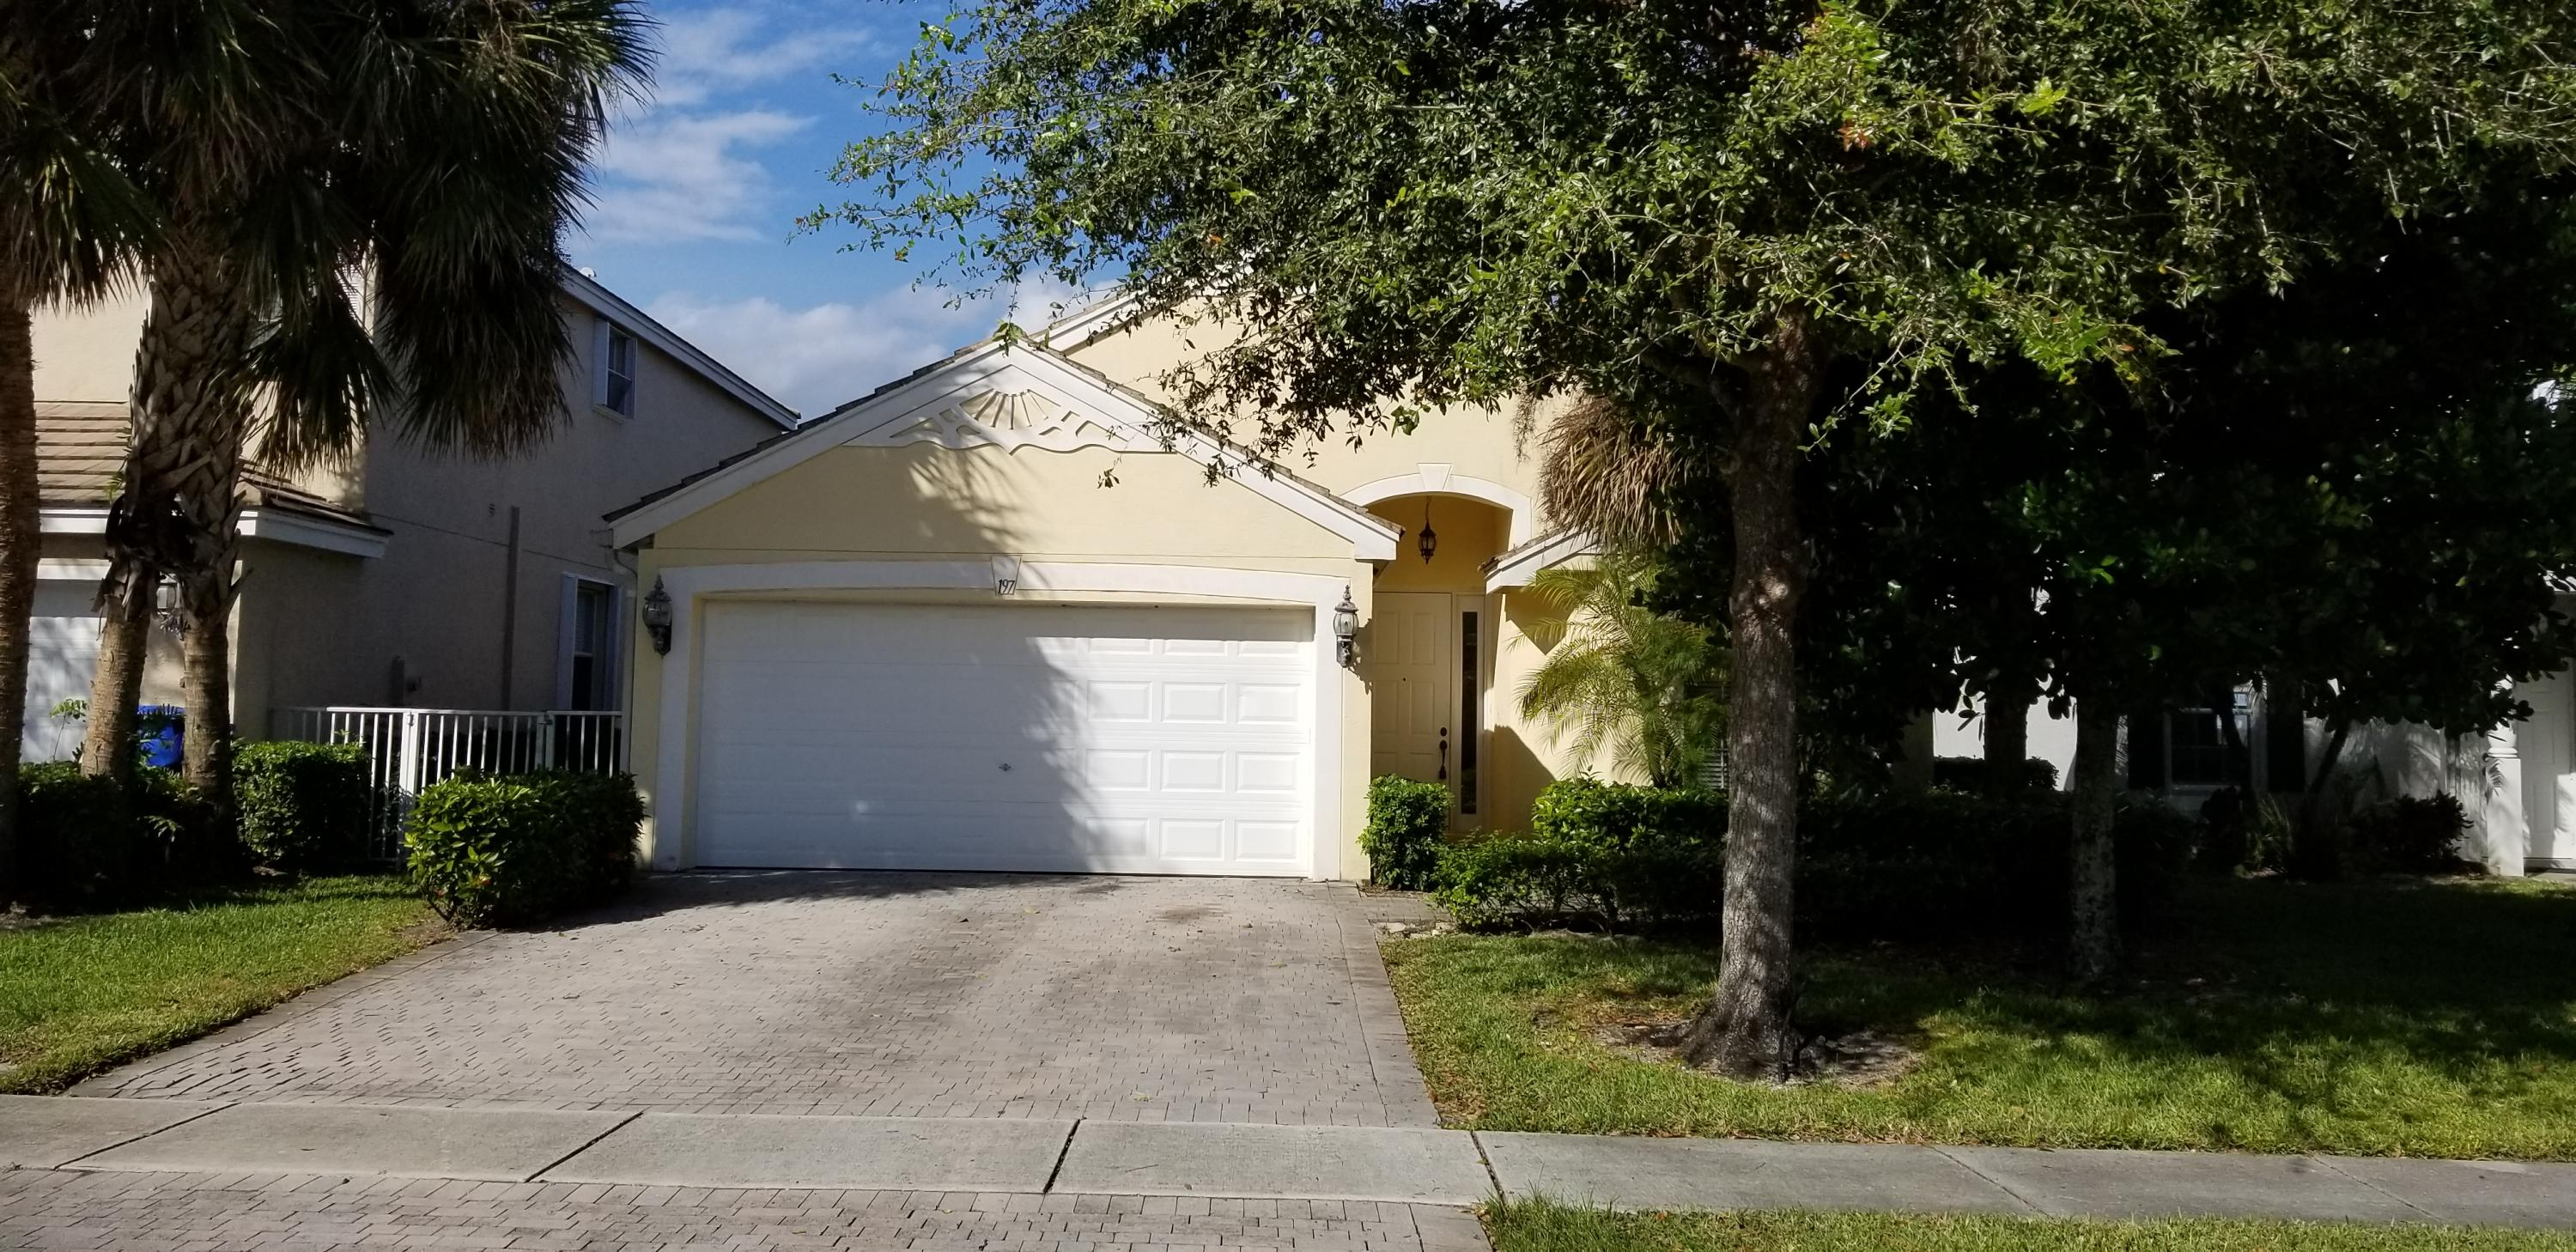 197 Berenger - Royal Palm Beach, Florida